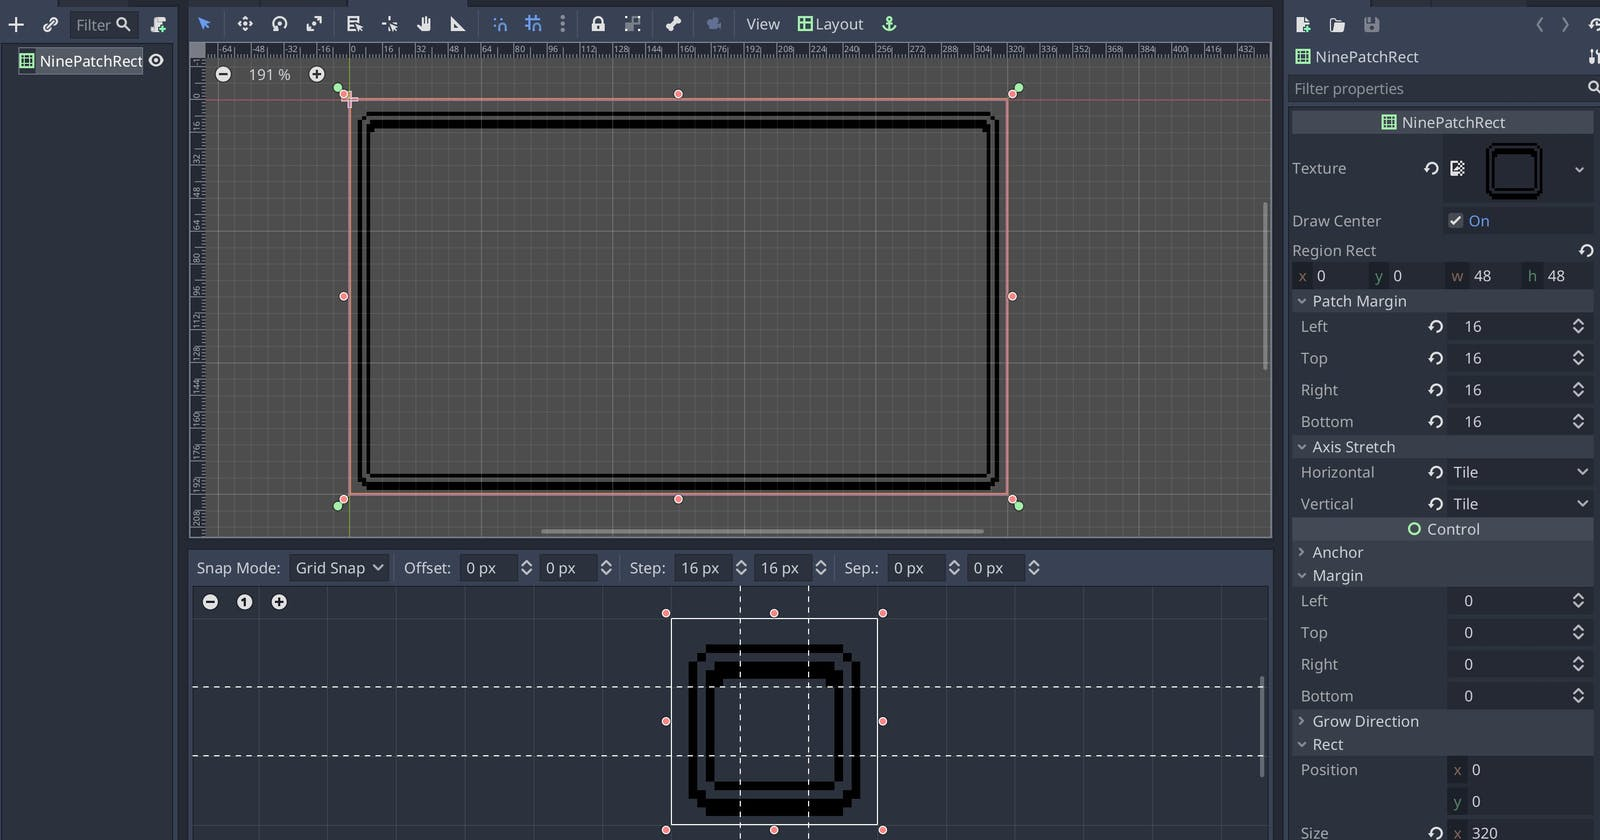 How to use tiles for your dialog box borders in Godot: The NinePatchRect component